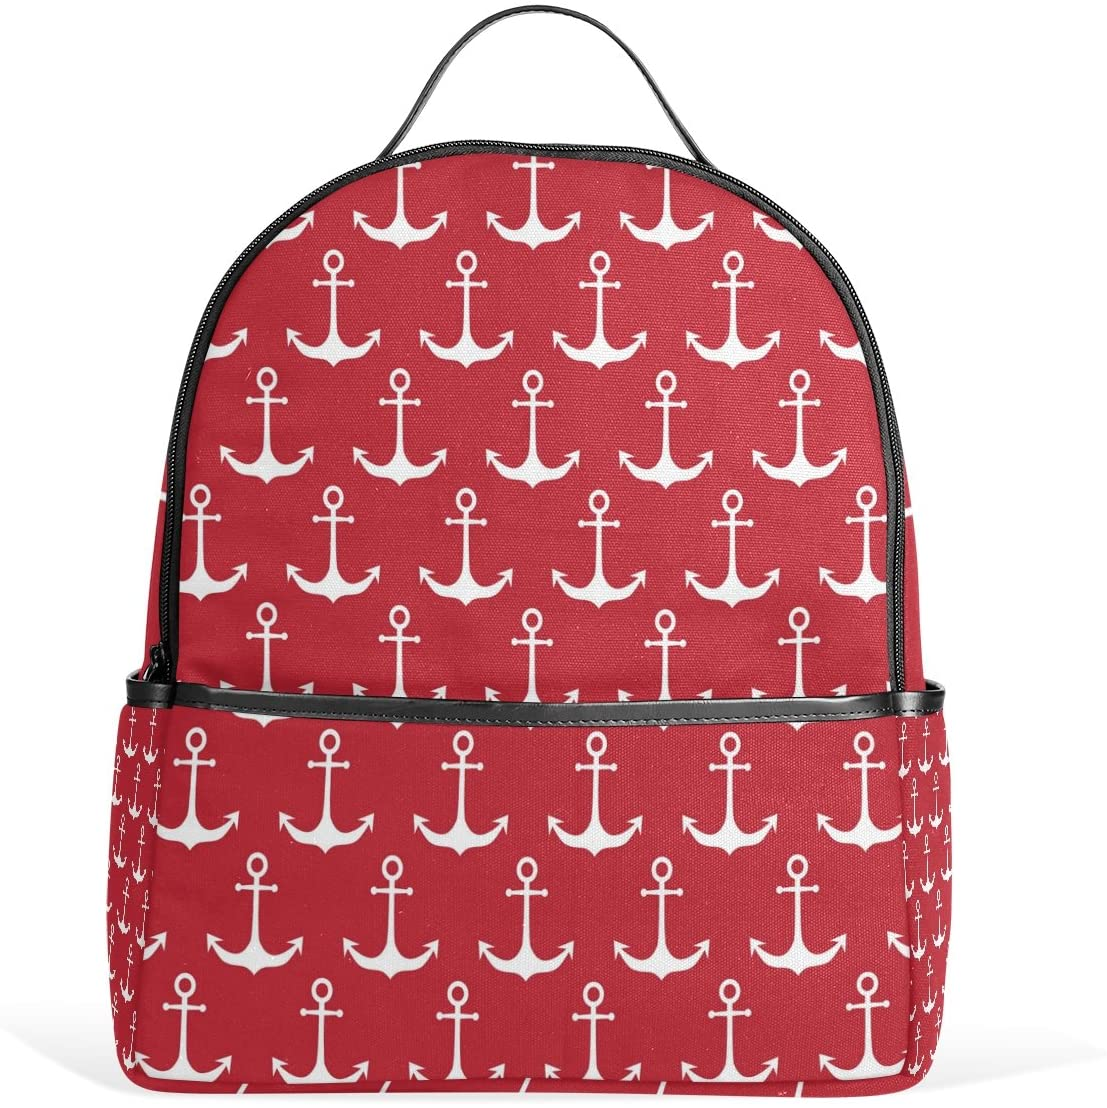 Use4 Red White Anchor Polyester Backpack School Travel Bag